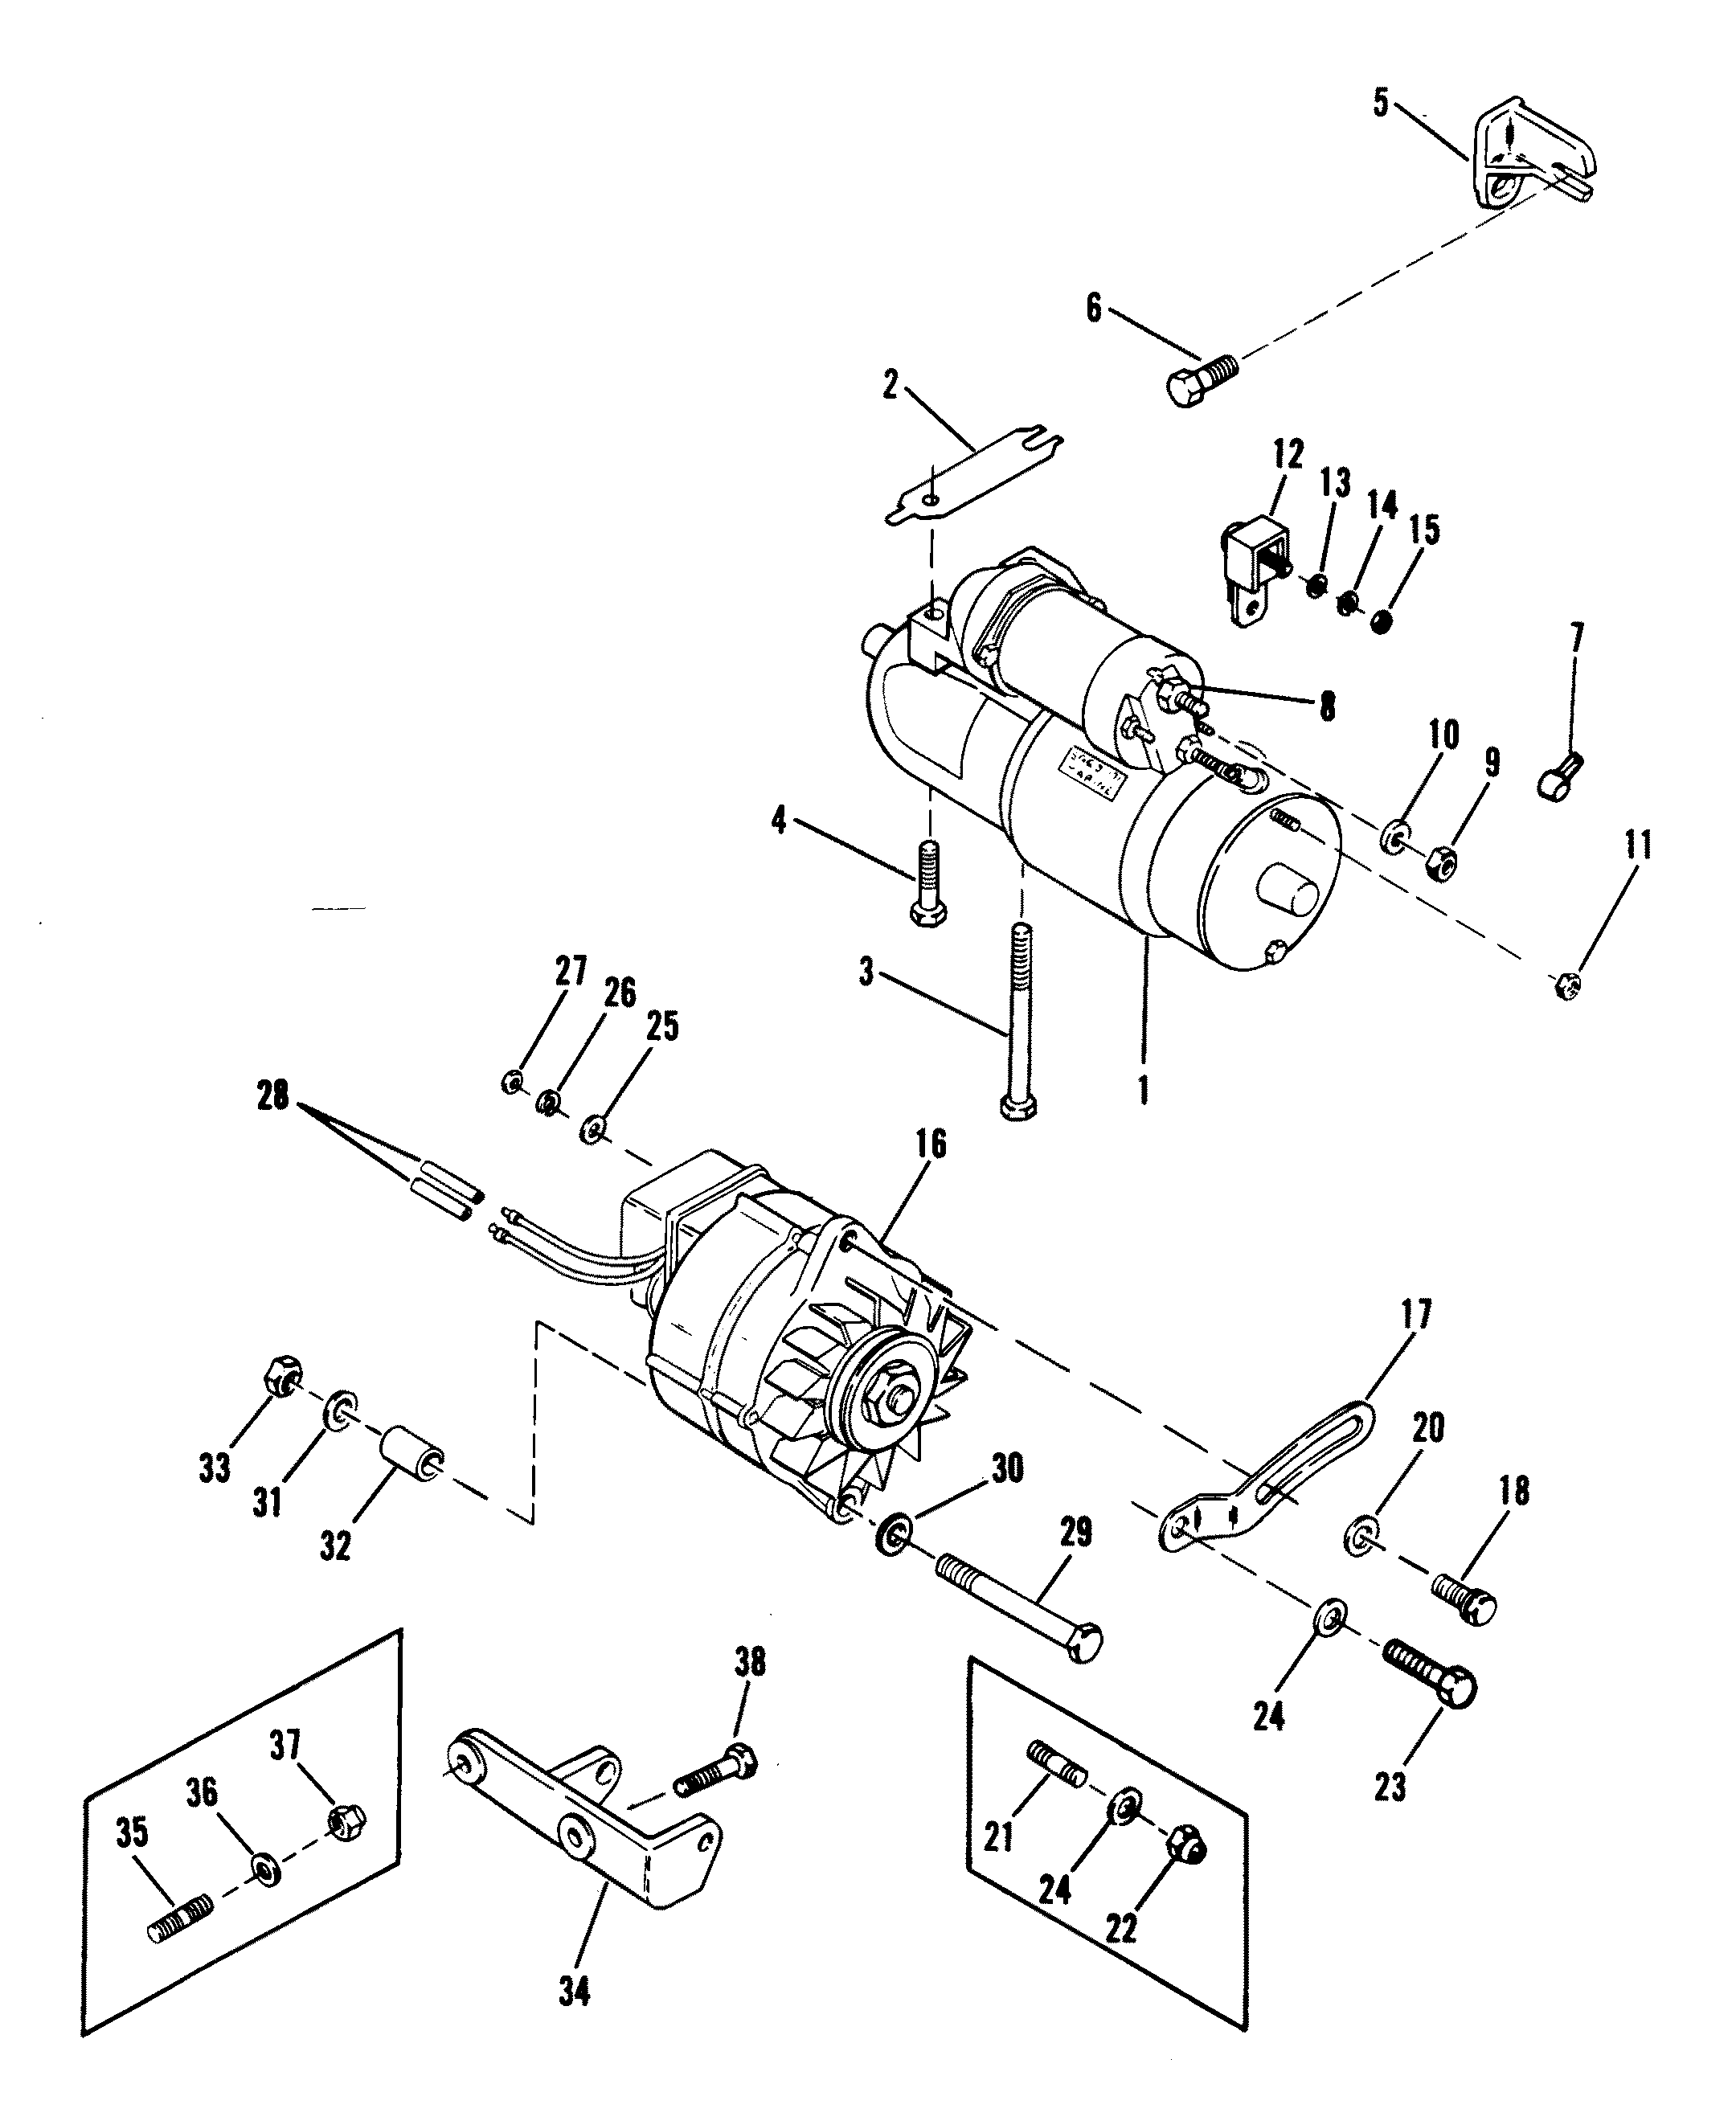 Mercruiser 3 0 Starter Wiring Diagram 43 Engine 120 Sierra 30 On